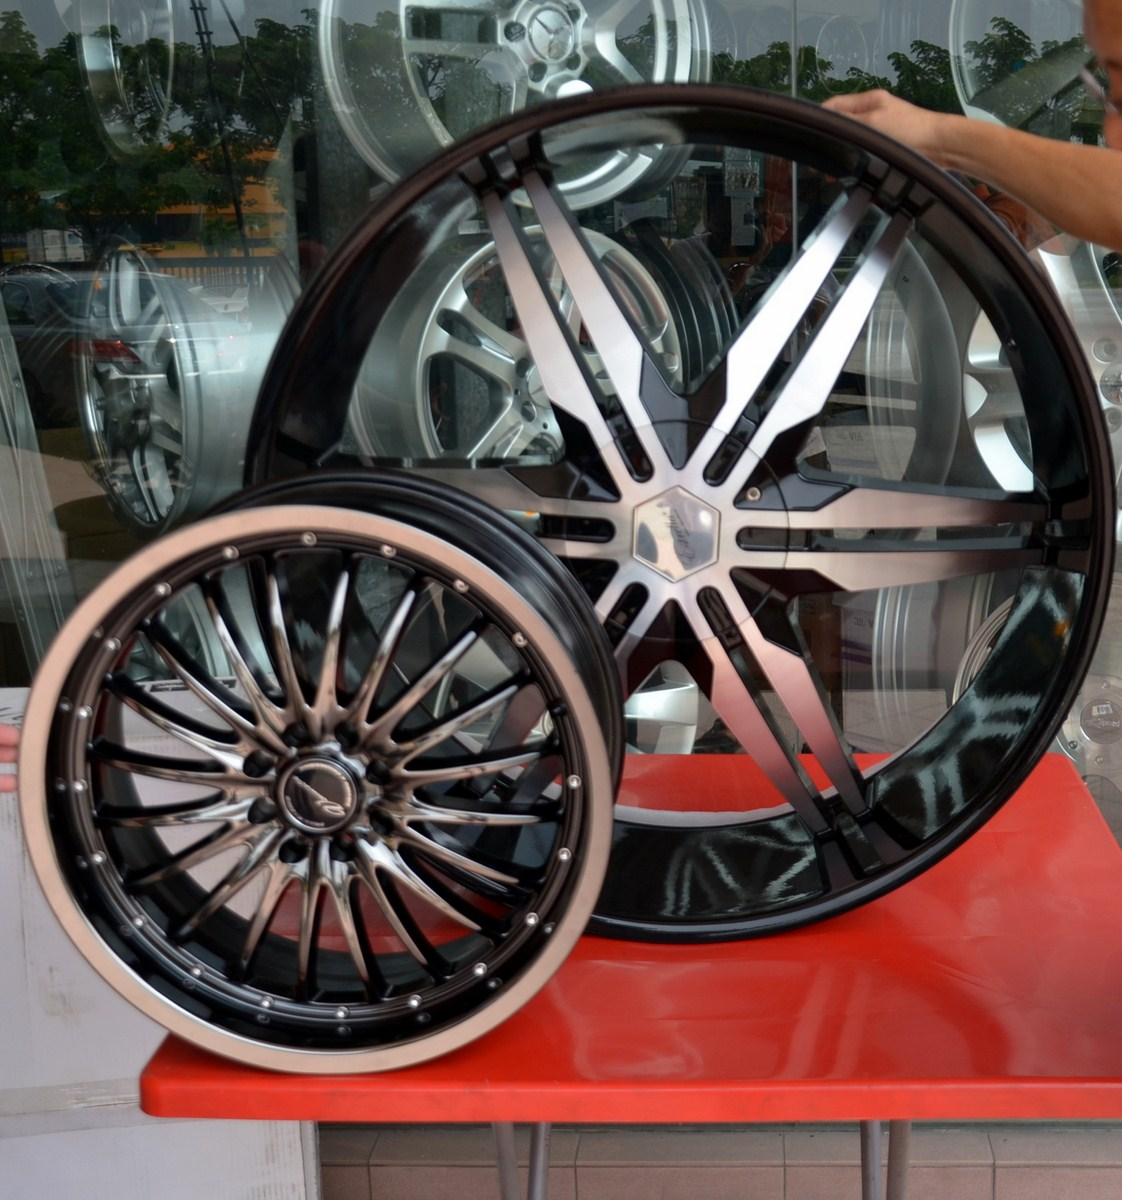 30 Inch Speakers And 30 Inch Rims : Tyre and rims h o one stop sdn bhd a big whopper